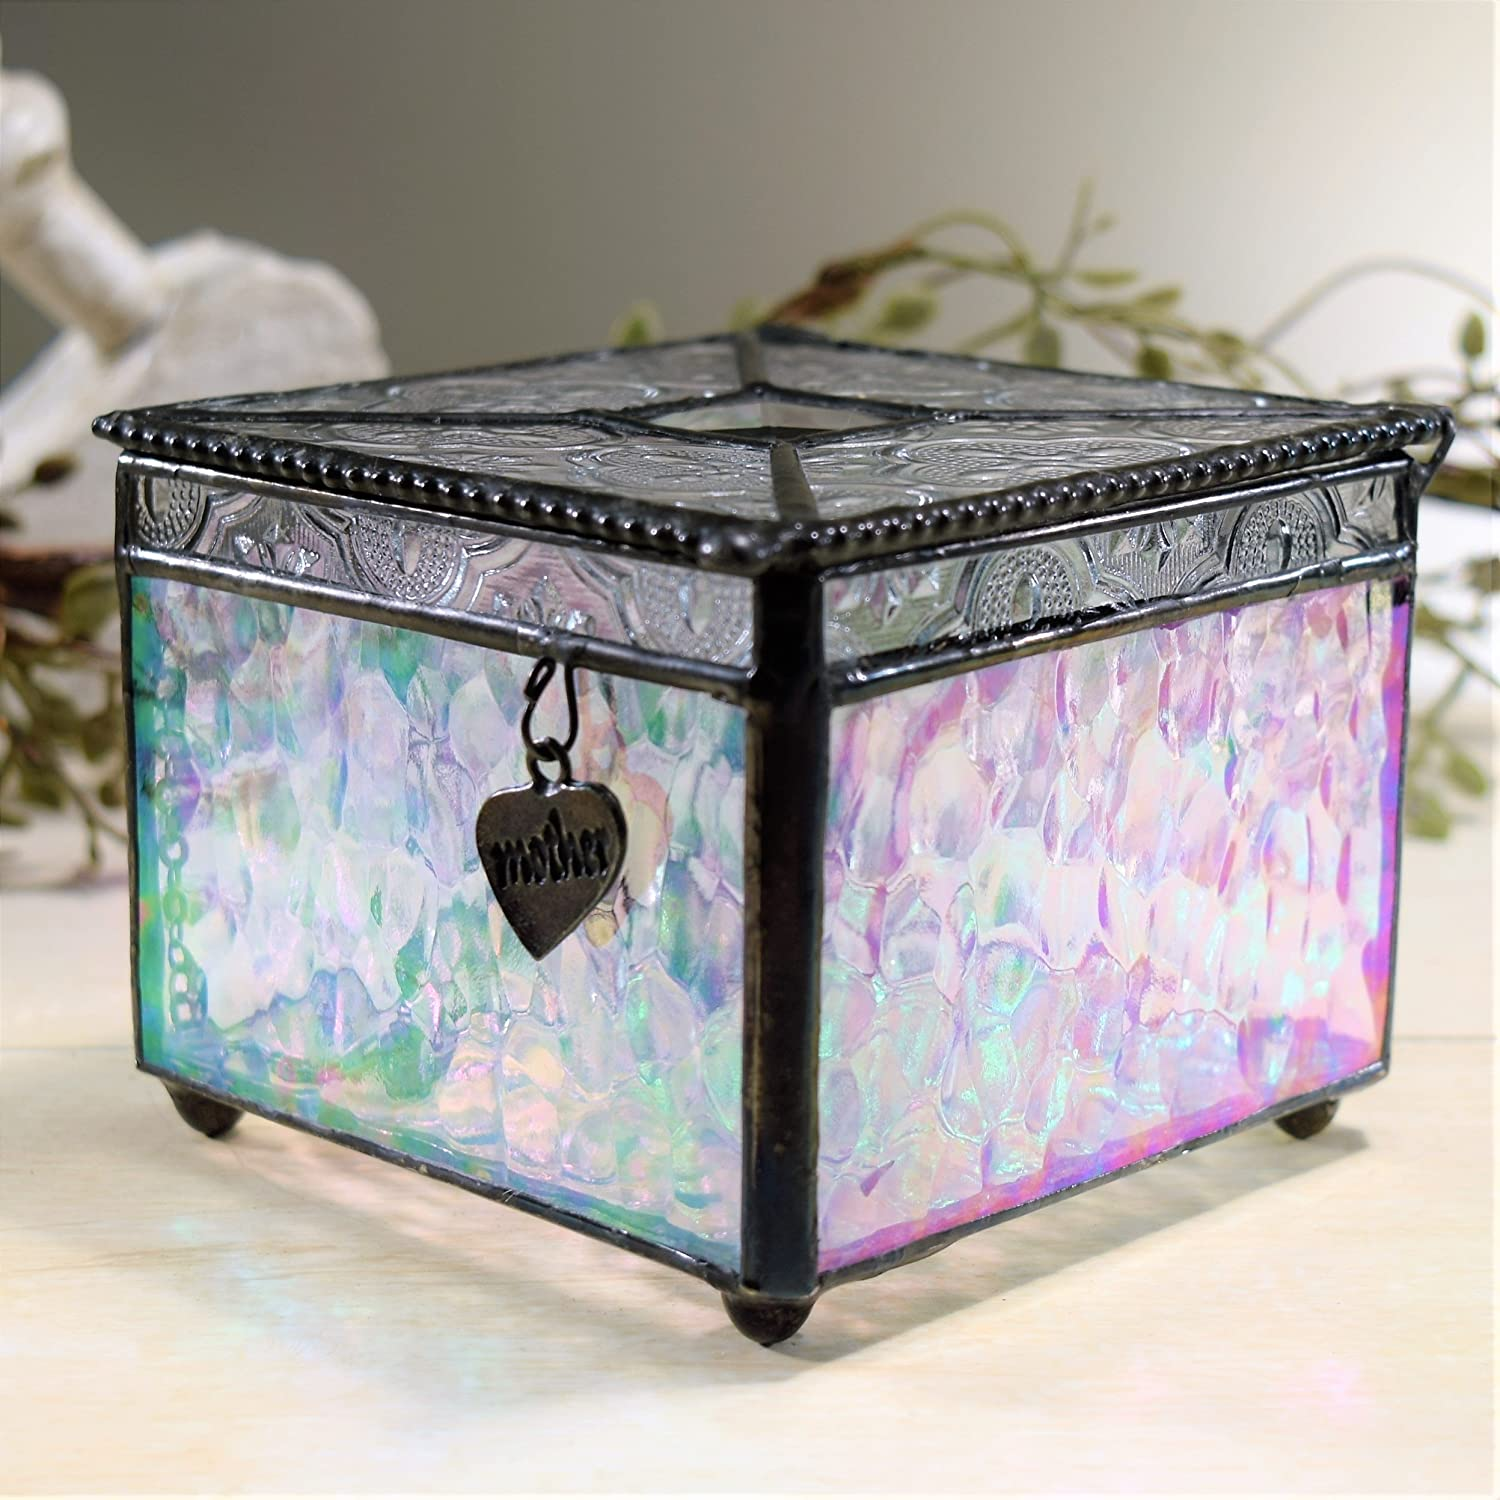 J Devlin Box 407 Stained Glass Keepsake Box for Mom Clear